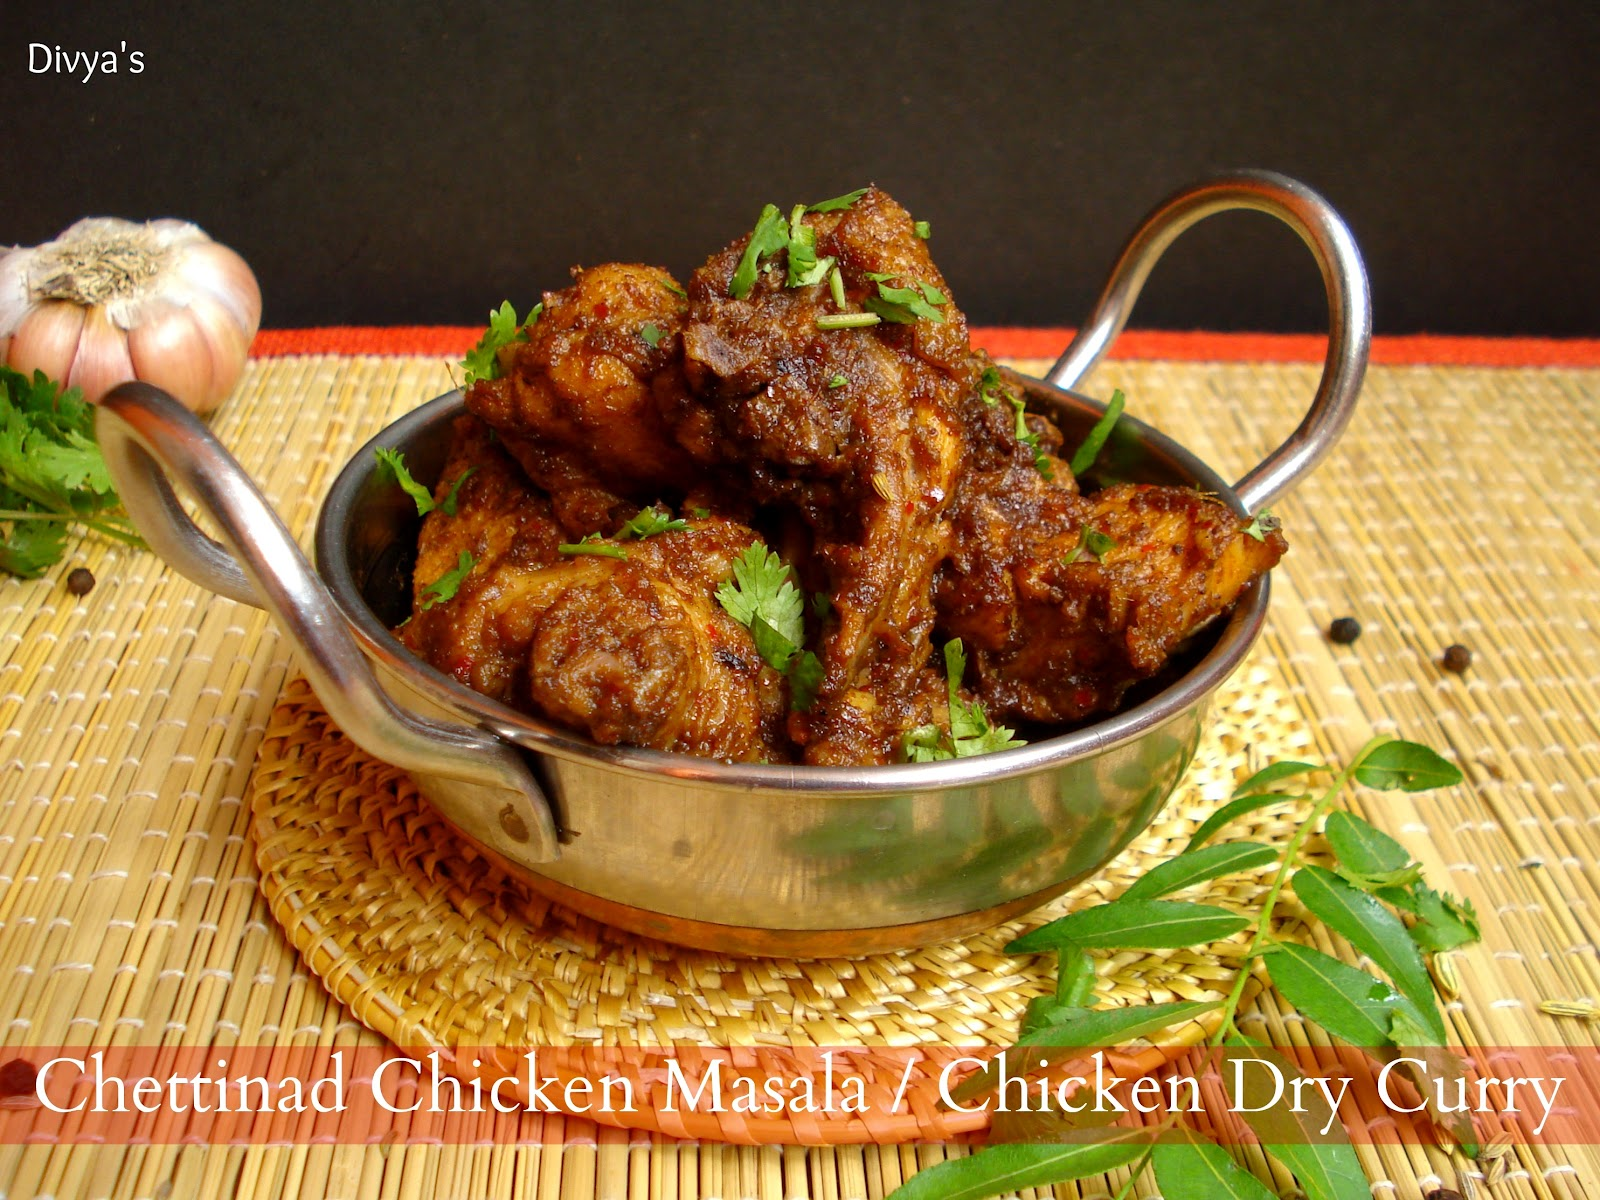 Chicken Dry Curry